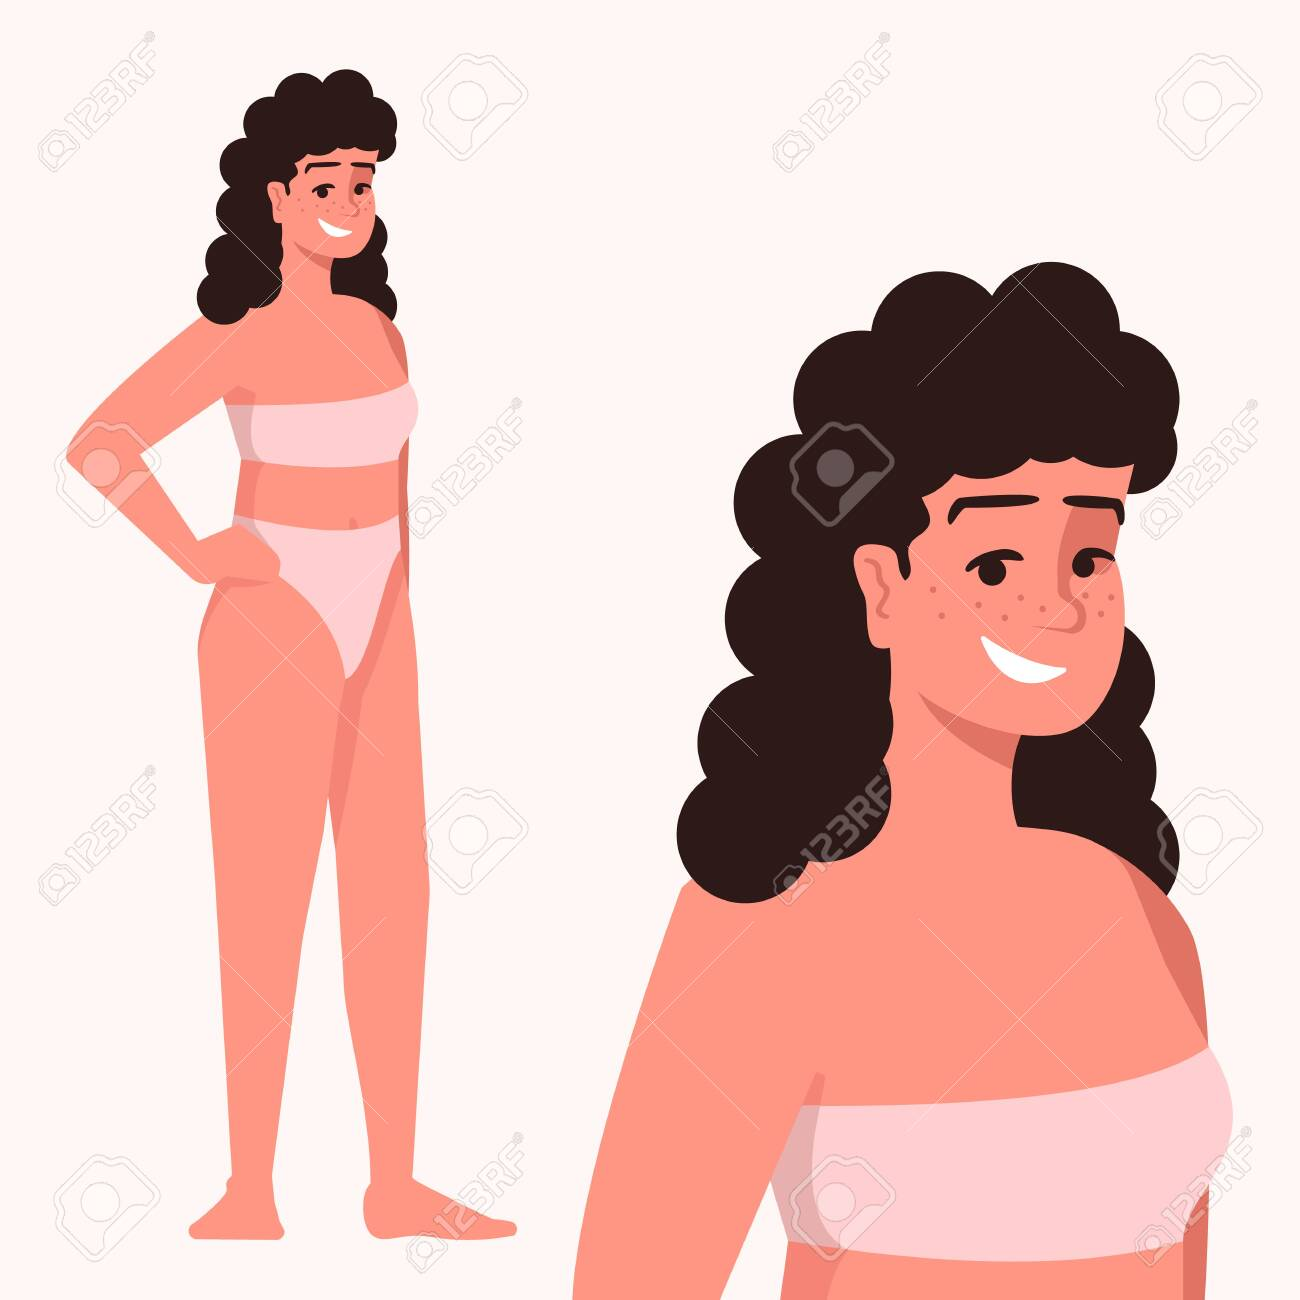 Woman Dressed In Two Piece Swimsuit Flat Vector Illustration